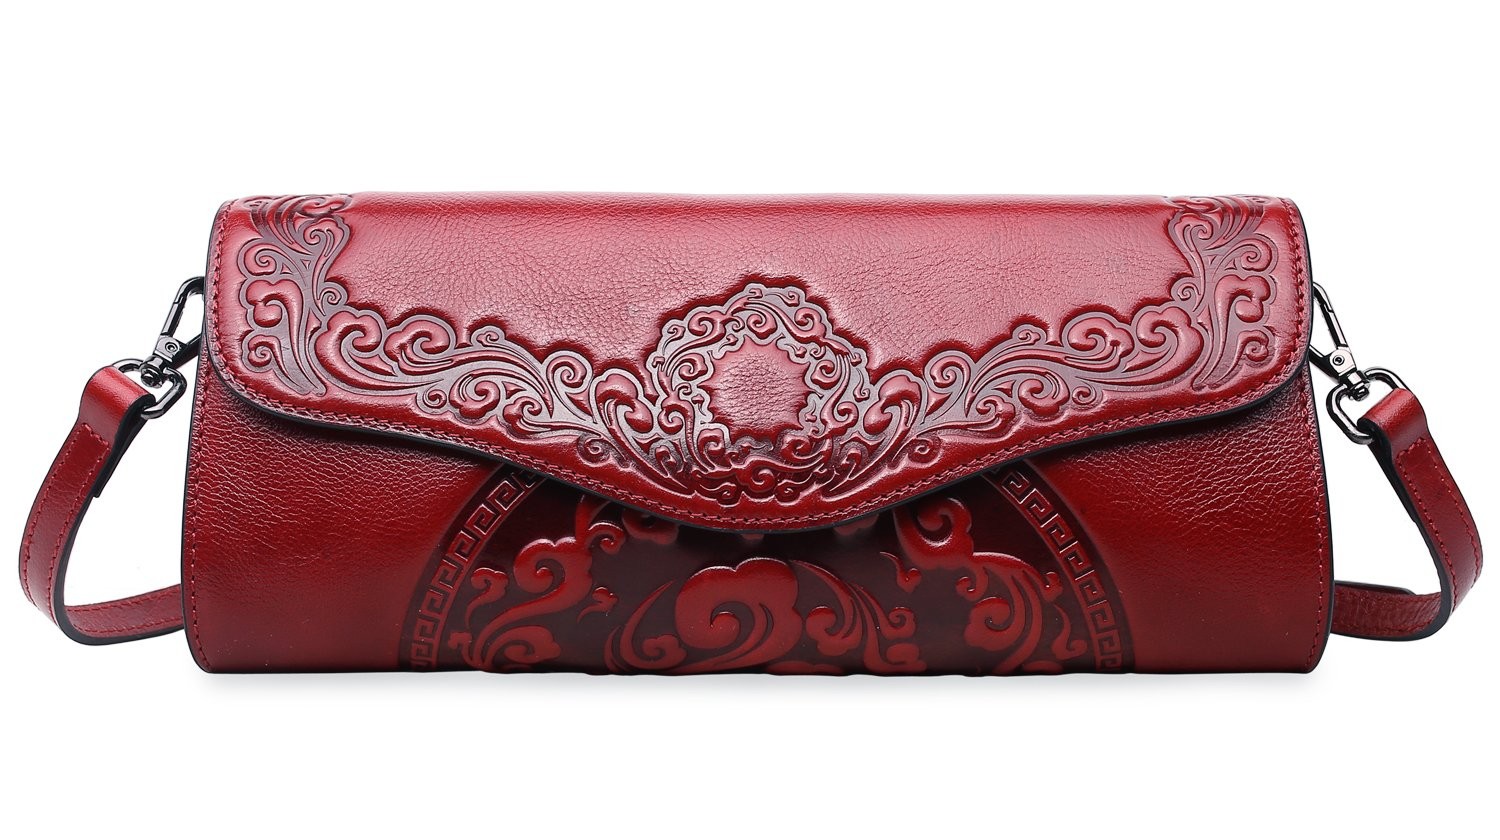 PIFUREN Womens Luxury Evening Wedding Party Purse Clutch Floral Handbag Y76937(One Size, Red)